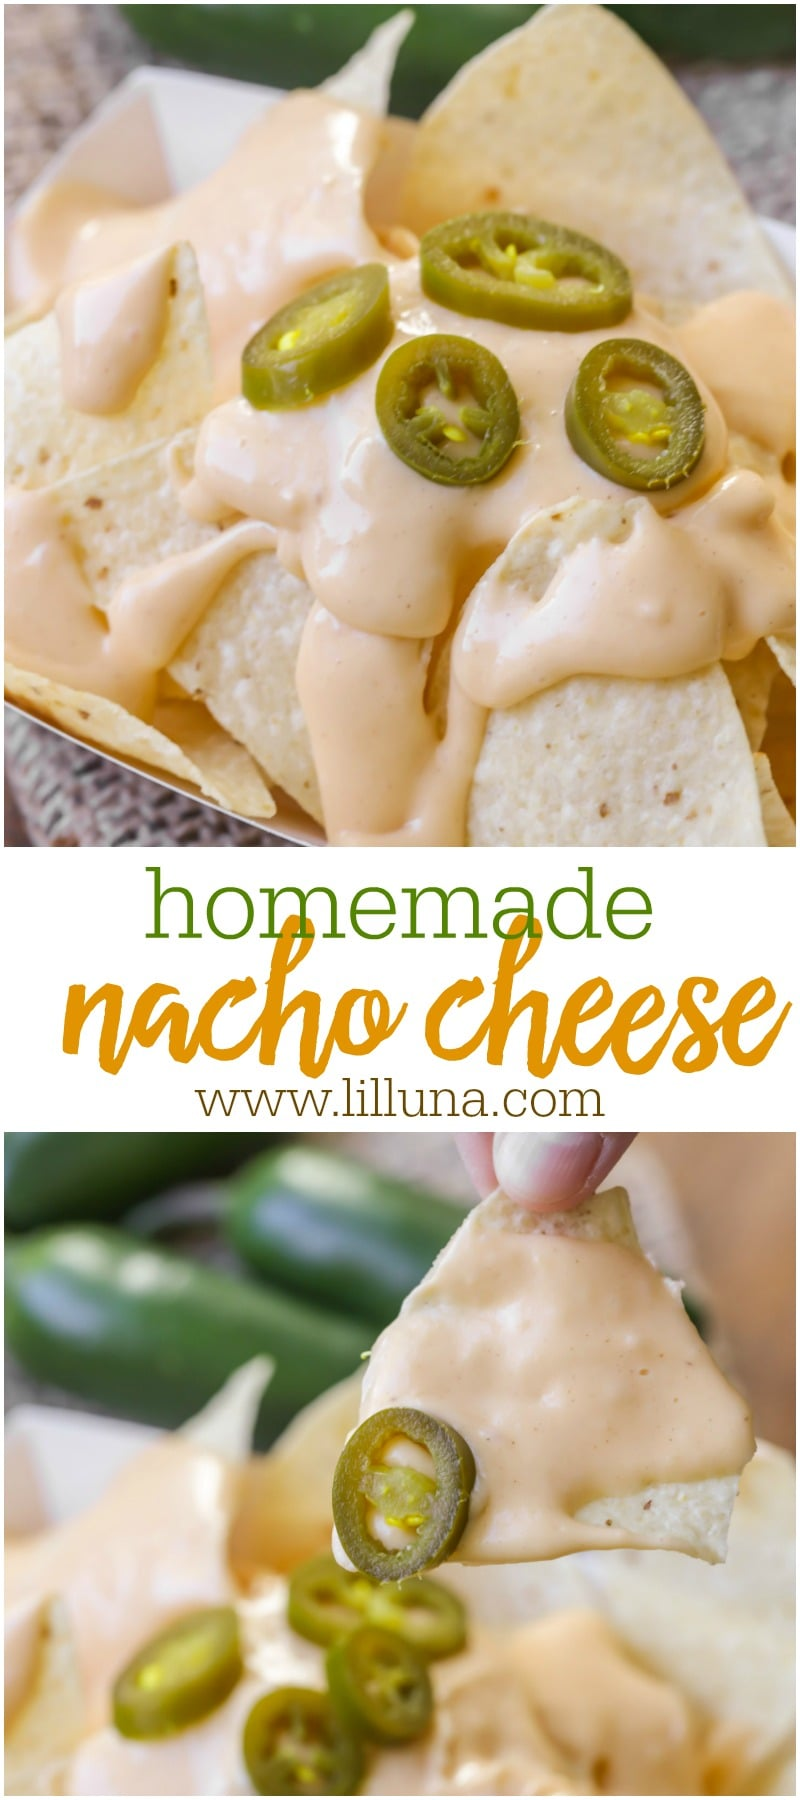 Homemade Nacho Cheese recipe